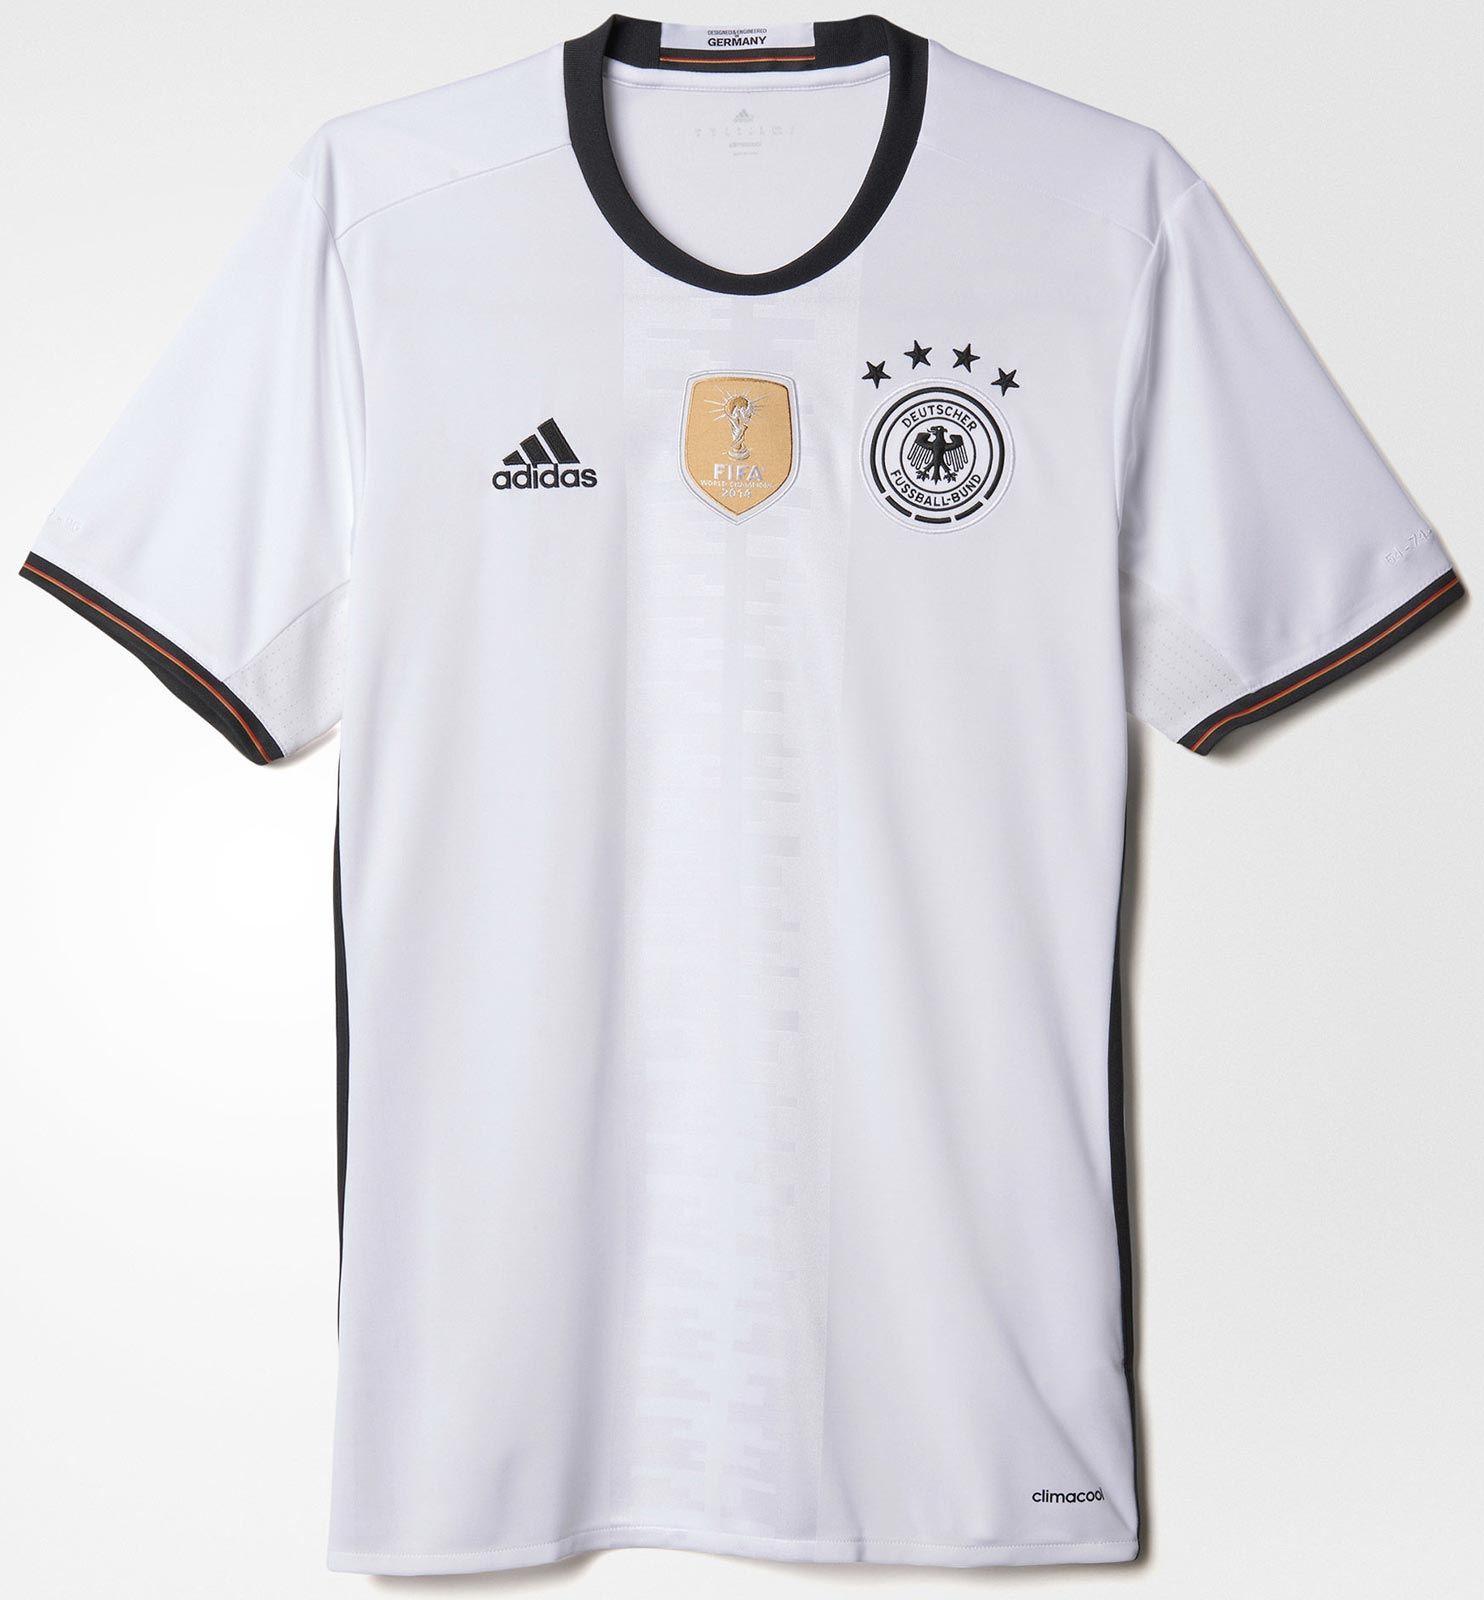 germany euro jersey